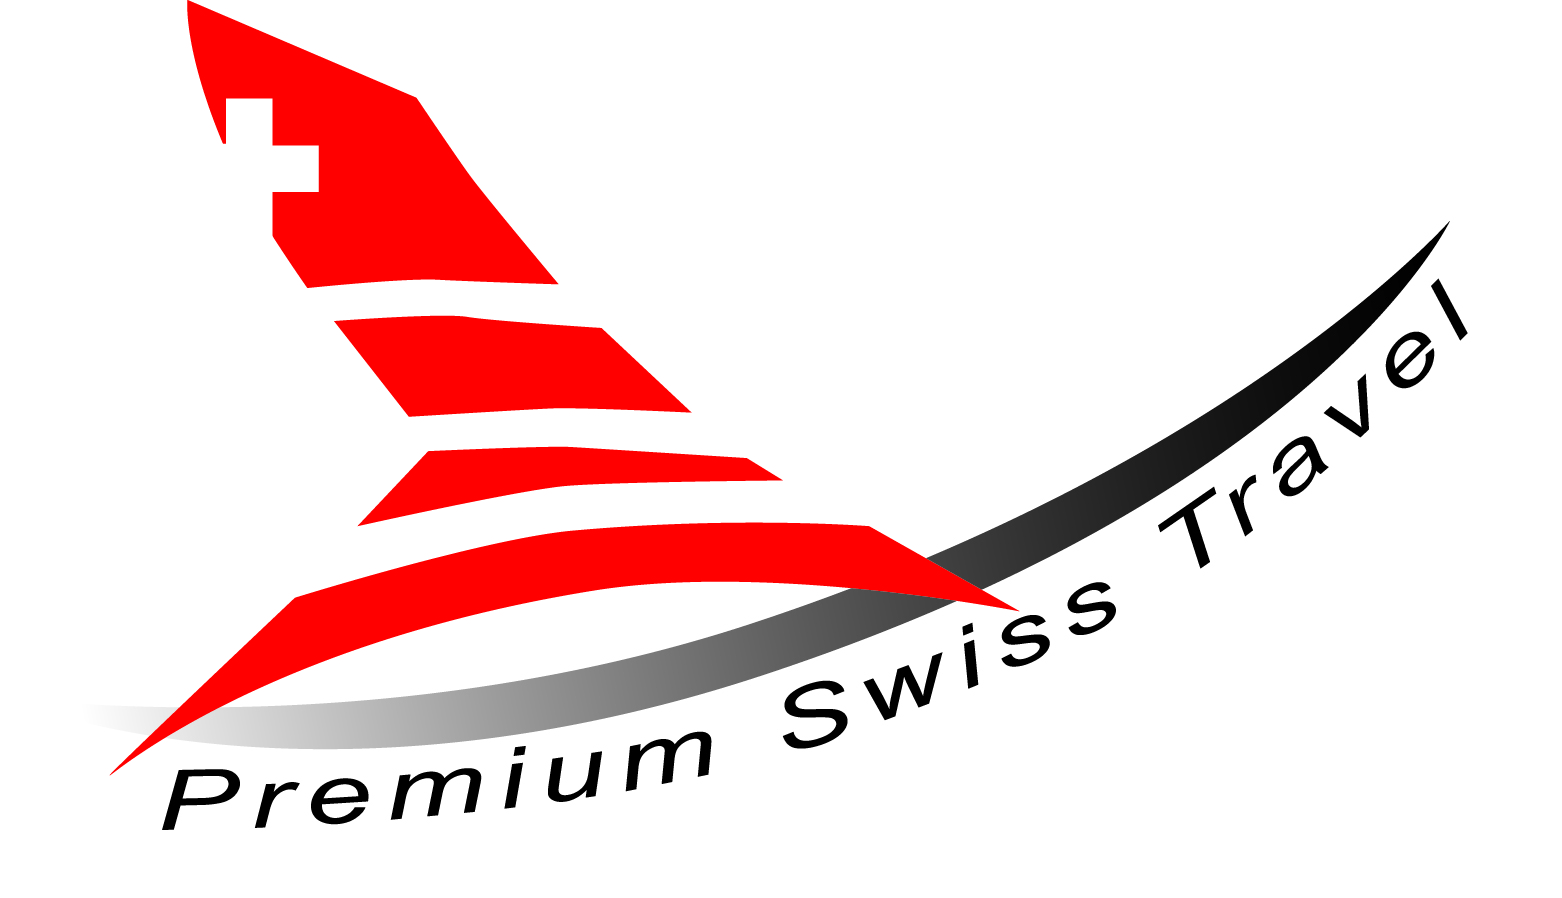 Premium Swiss Travel | Destinations - Premium Swiss Travel